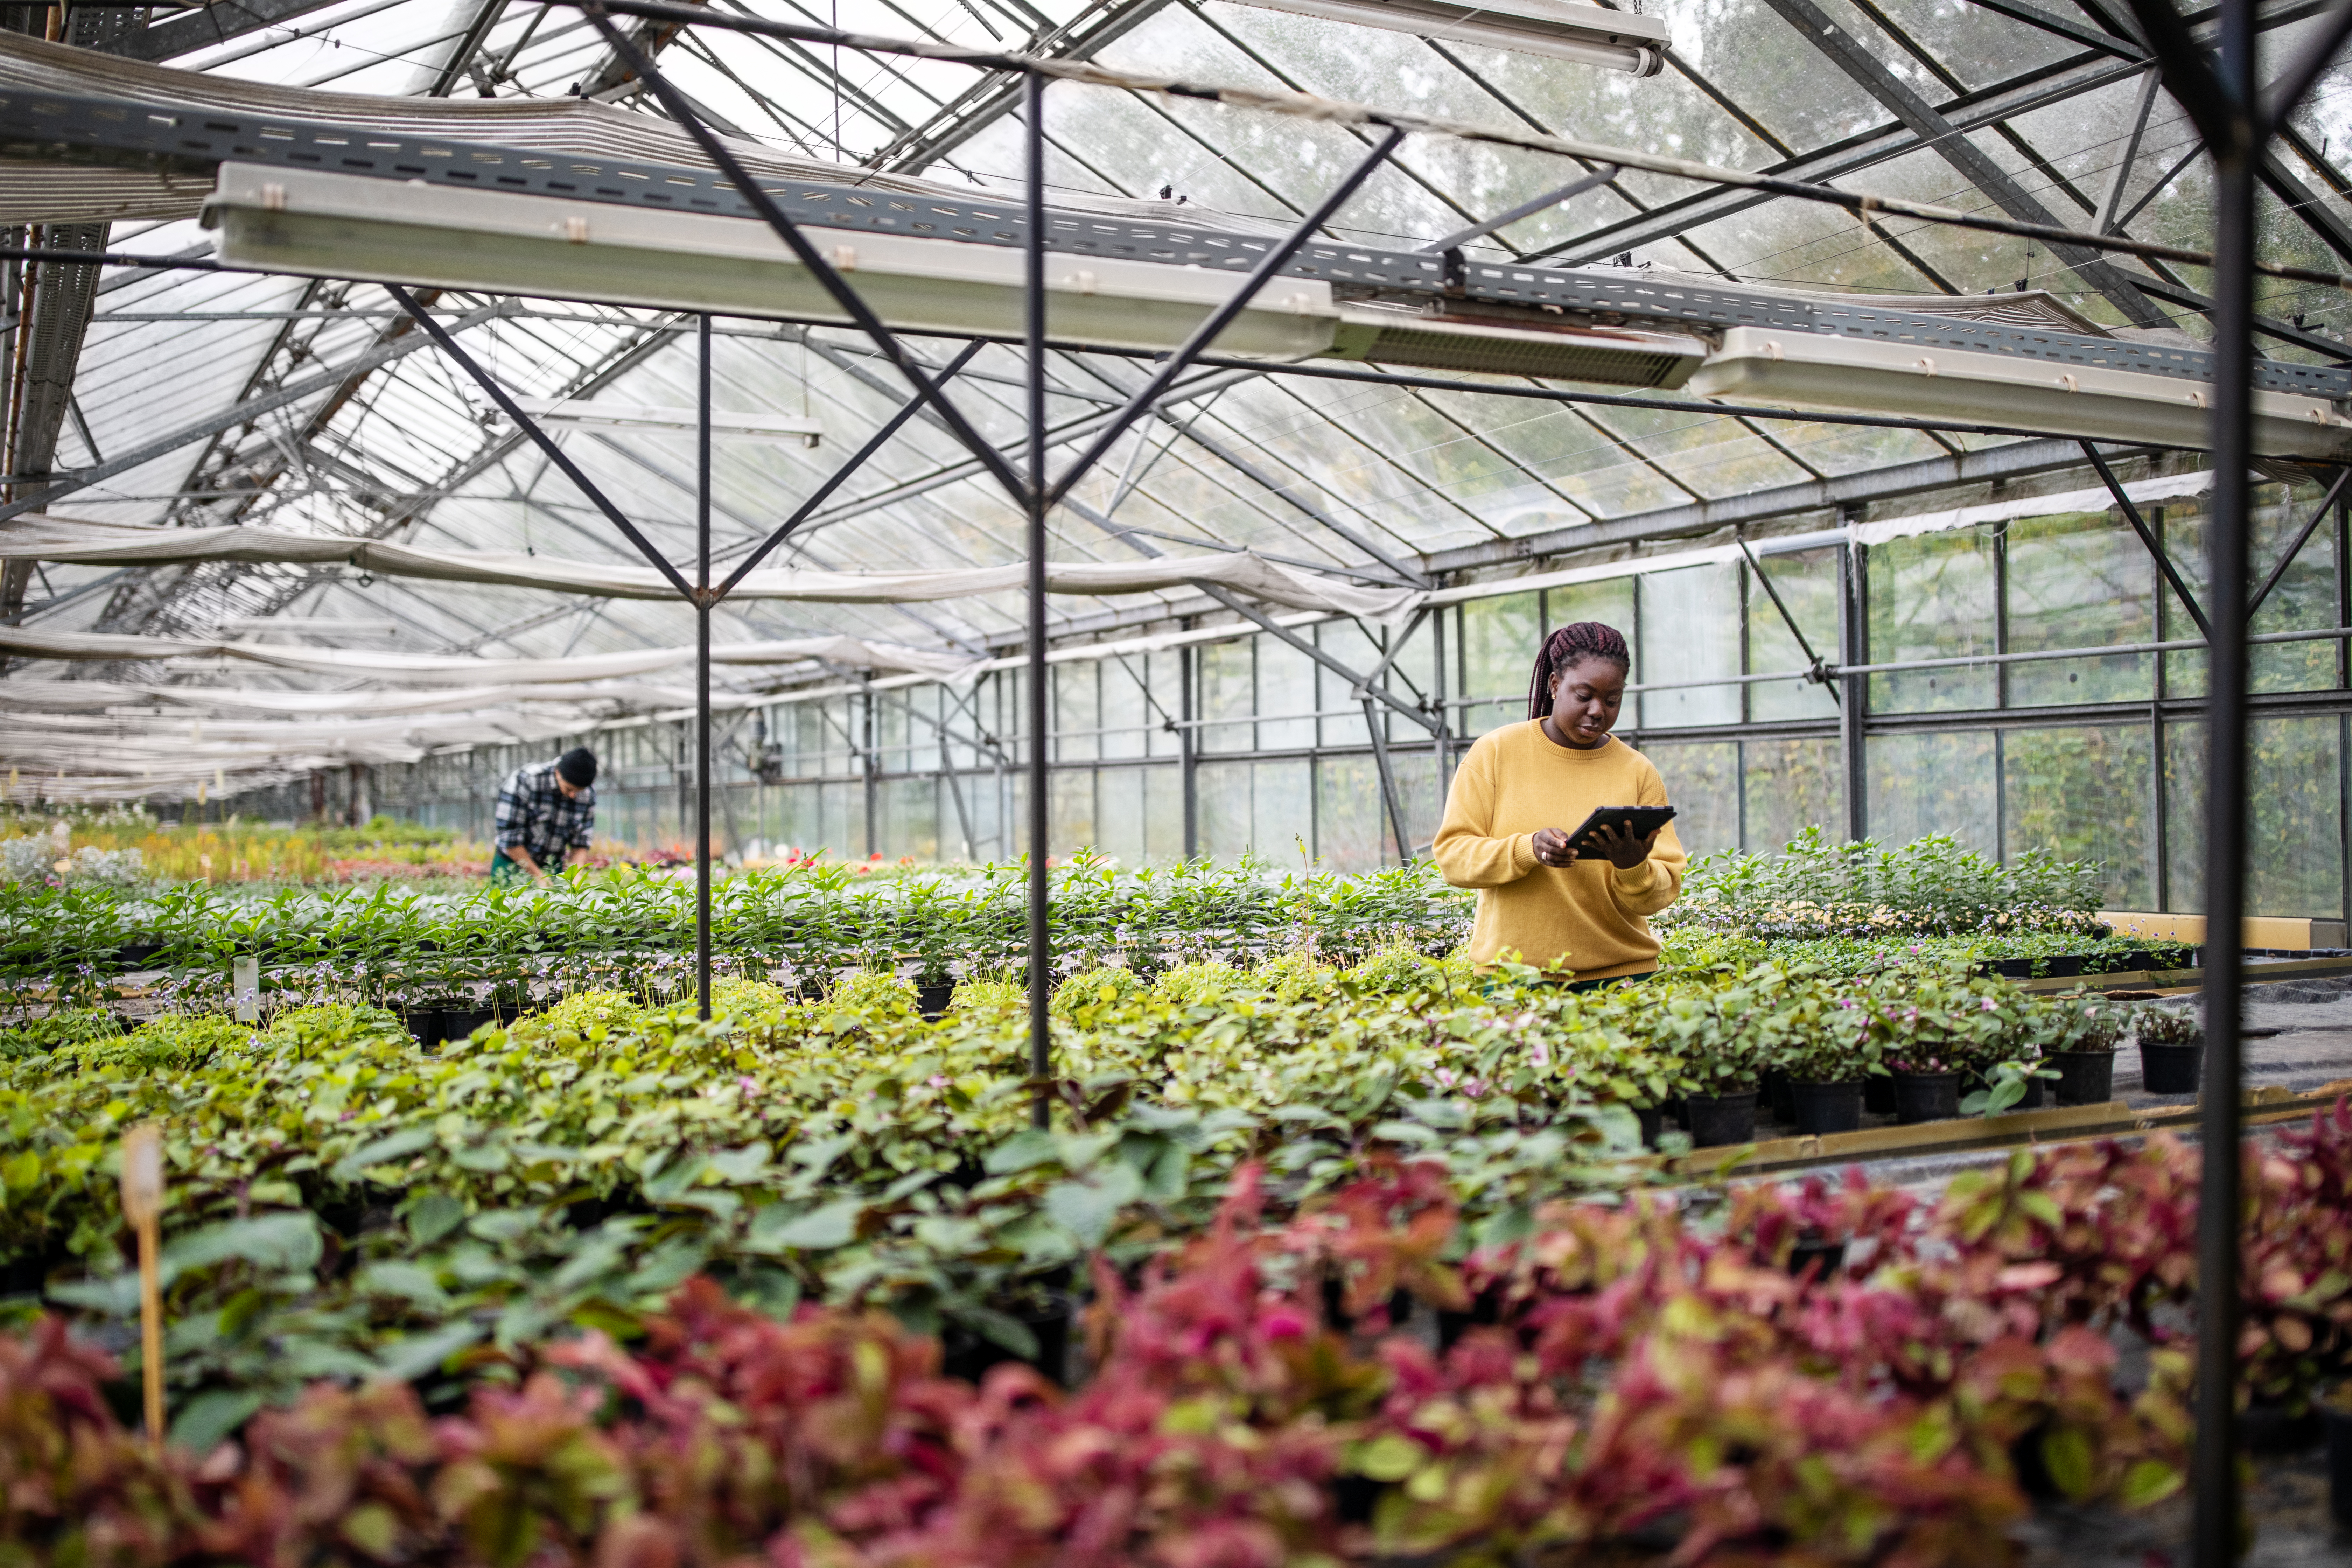 A person using a digital tablet inside a garden center's greenhouse full of plants.